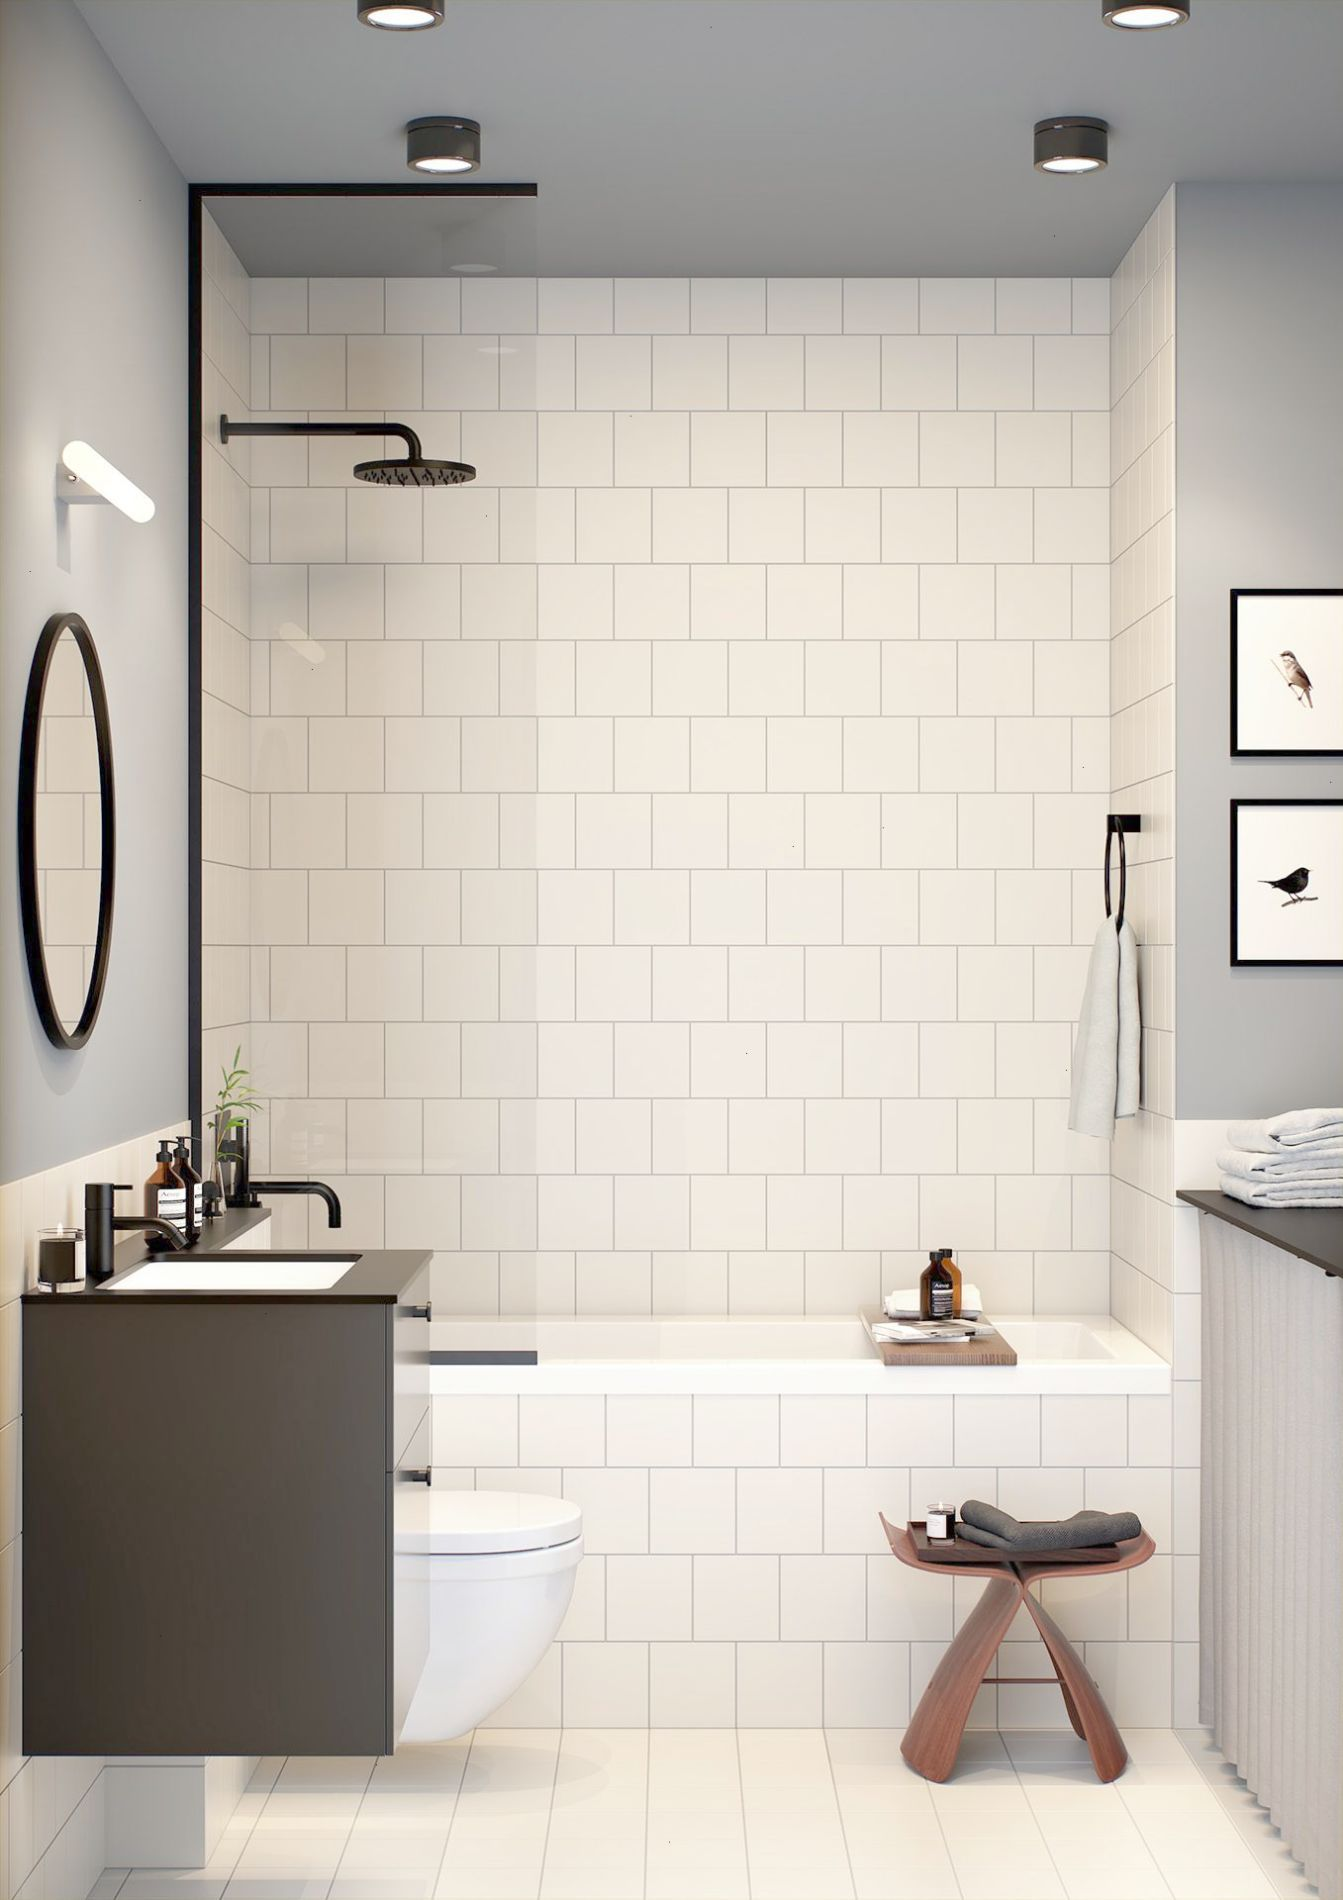 Pin by brooklyn campbell on home design pinterest amazing